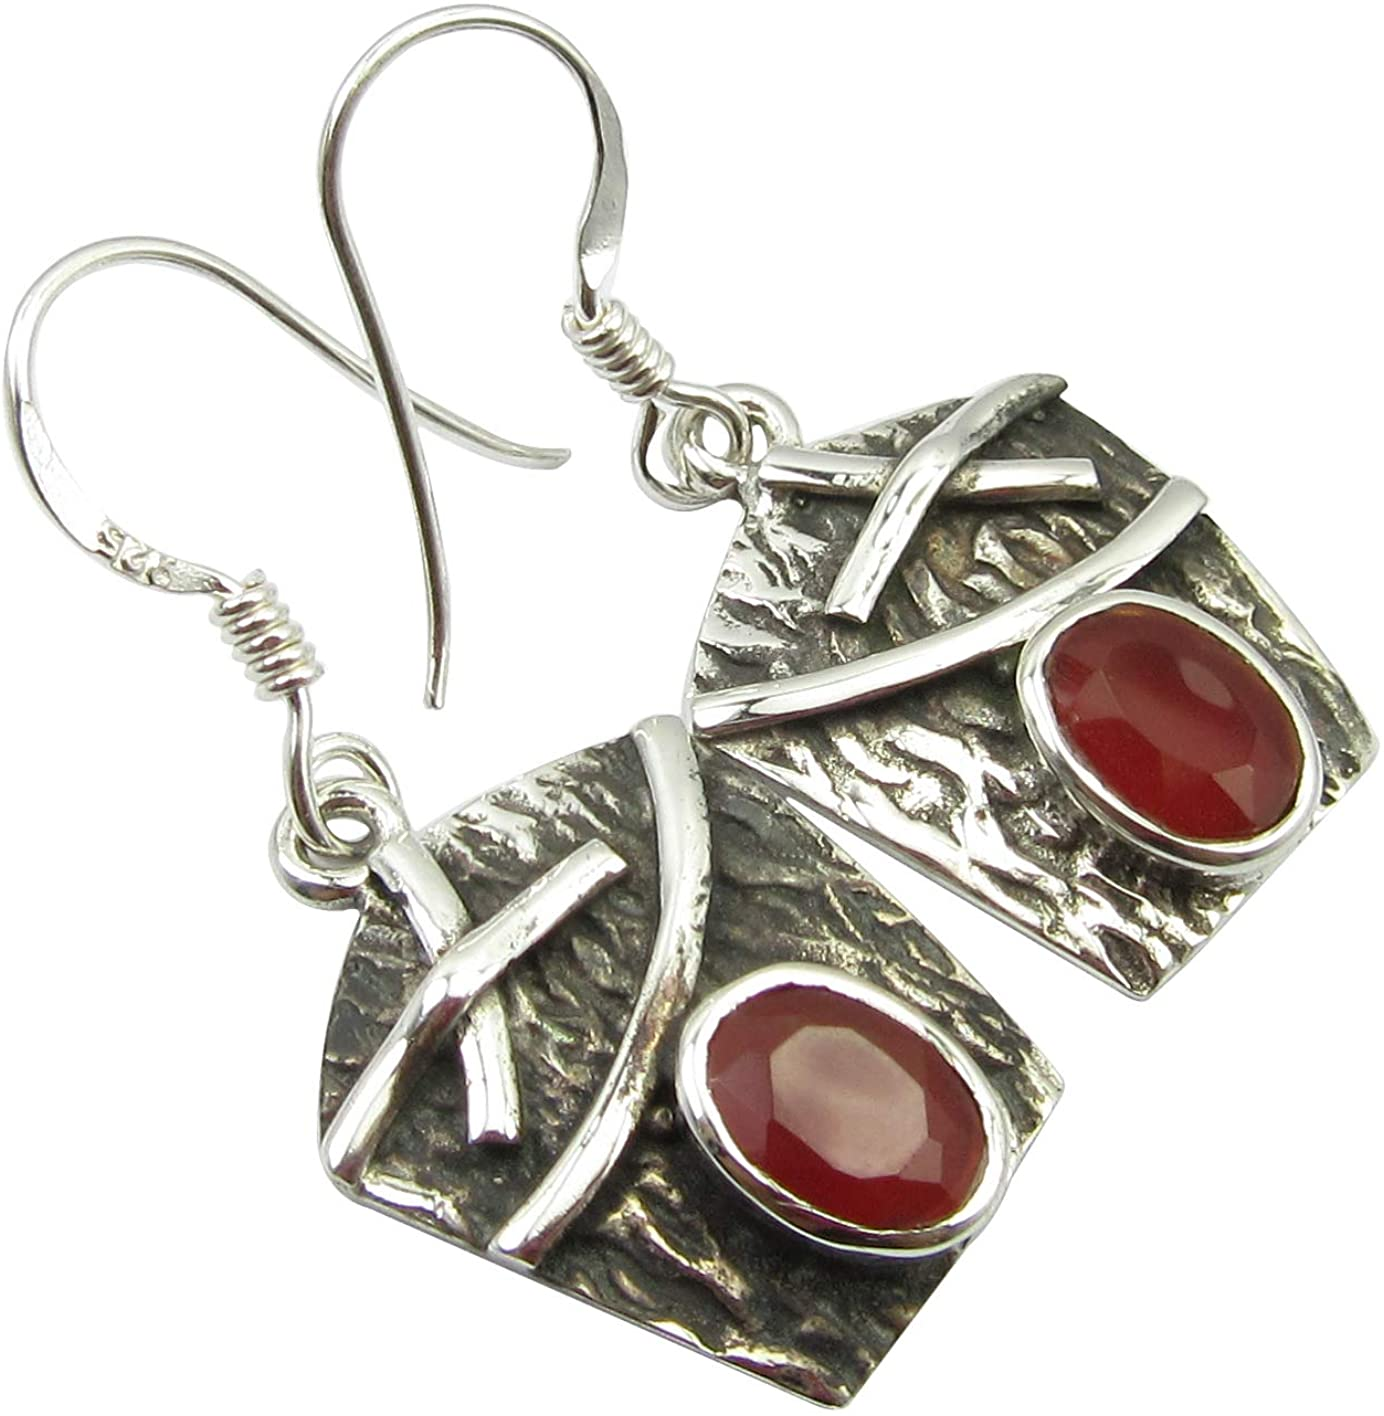 SilverStarJewel 925 Stamped Pure Sterling Silver Carnelian tcw 2.0 Oxidized Earrings 1.3